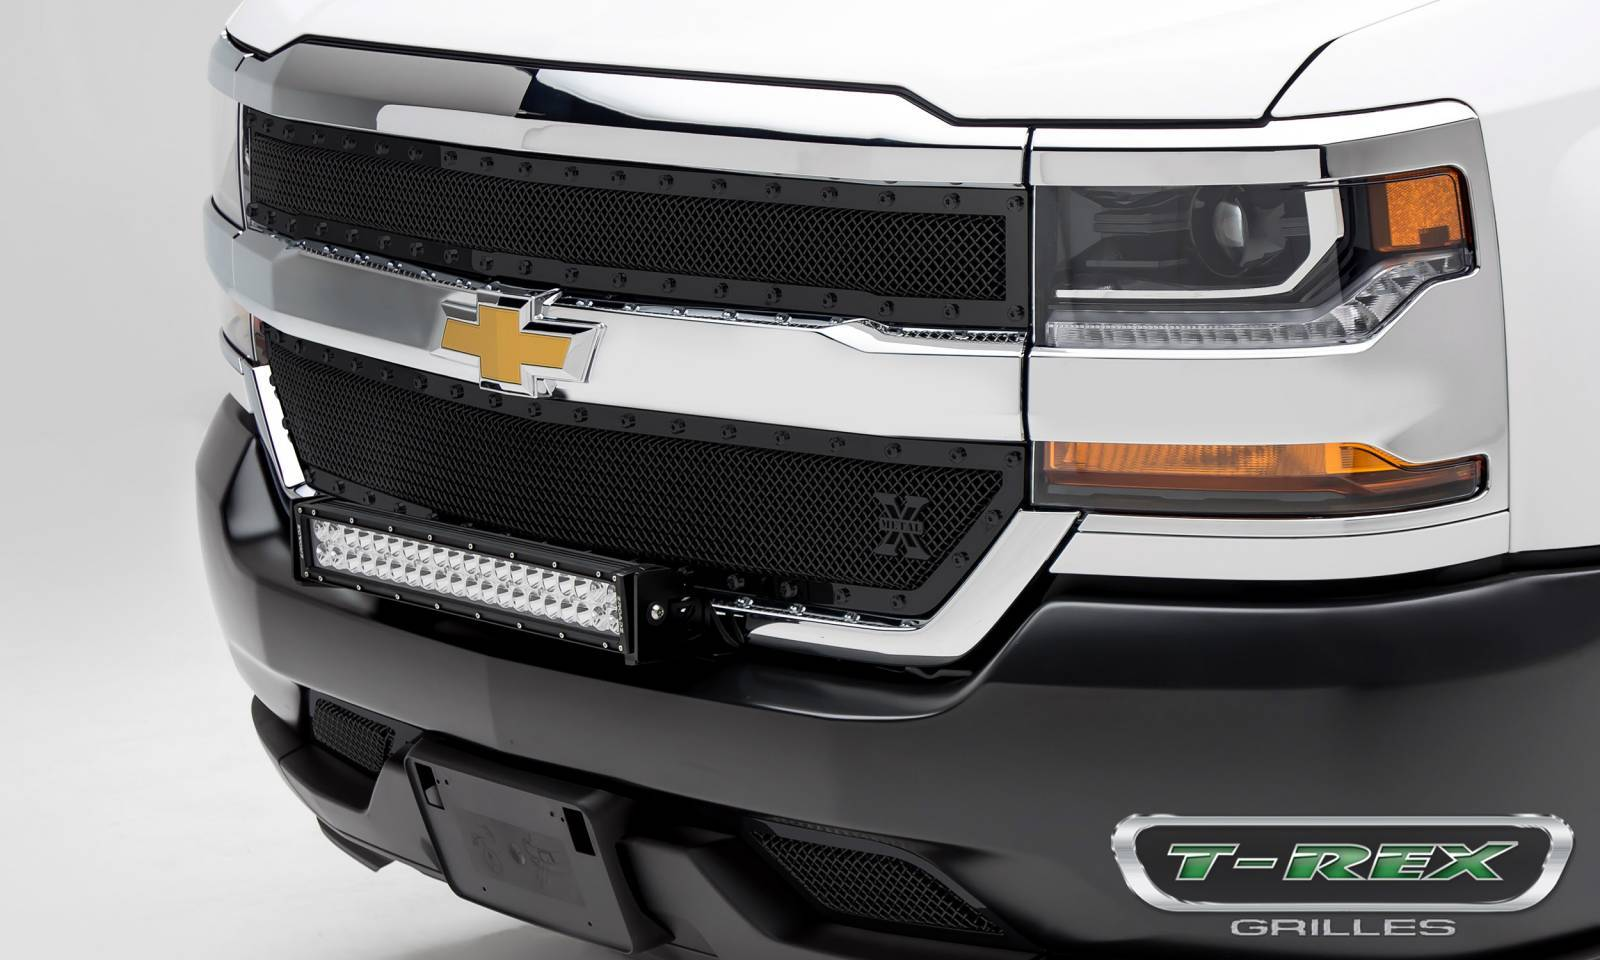 T-REX Grilles - Chevrolet Silverado 1500 X-METAL Series, STEALTH METAL - Blacked Out All Black, 2 Pc Main Grille Overlay - Pt # 6711281-BR